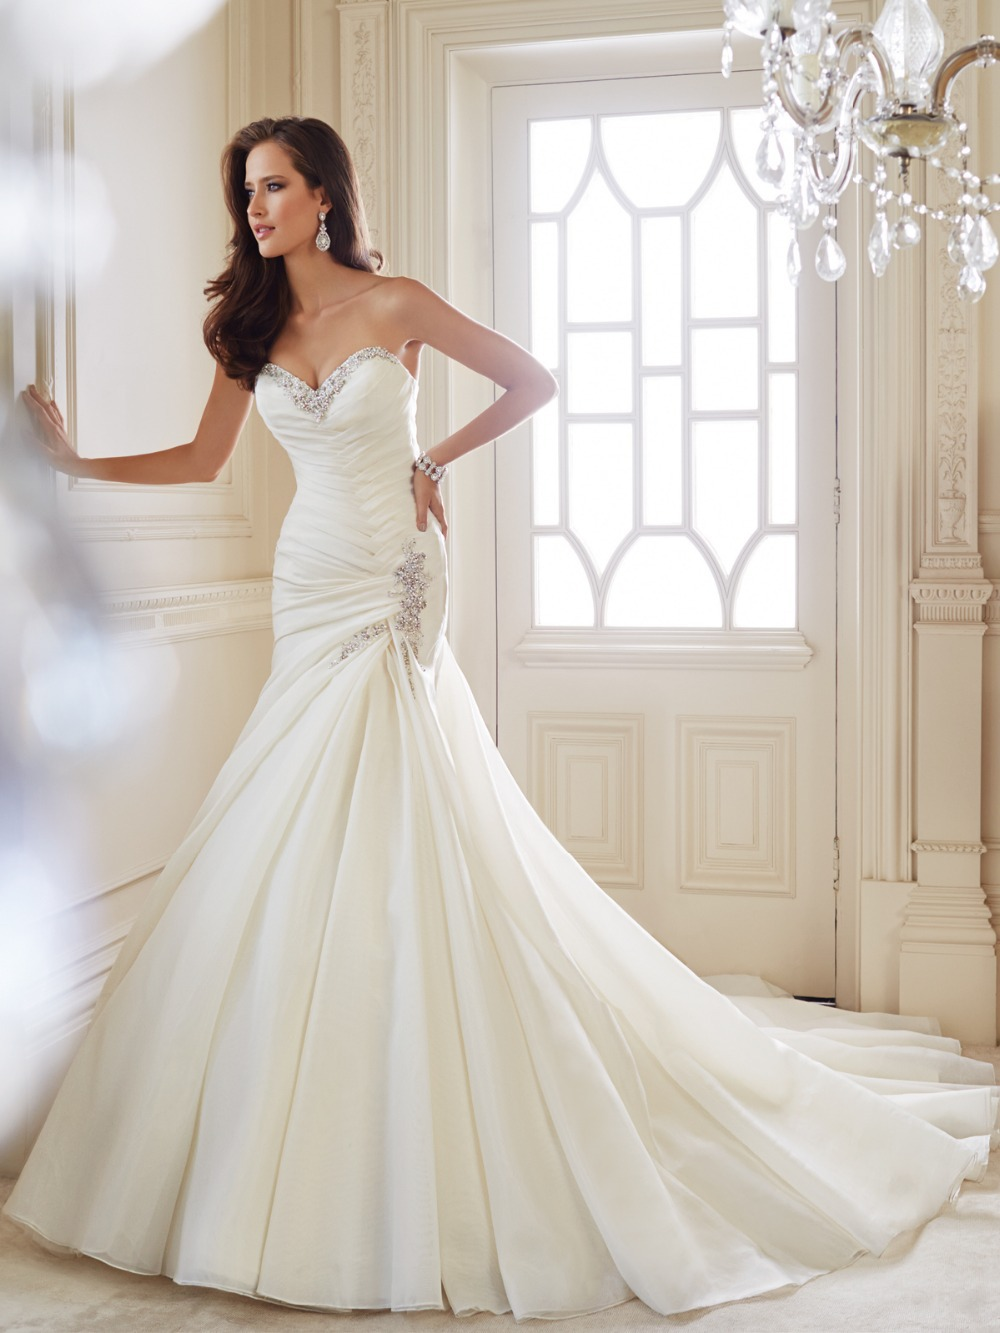 Wedding Dresses With Crystals : Cuquitoycuquitadaniyanna mermaid wedding dresses with